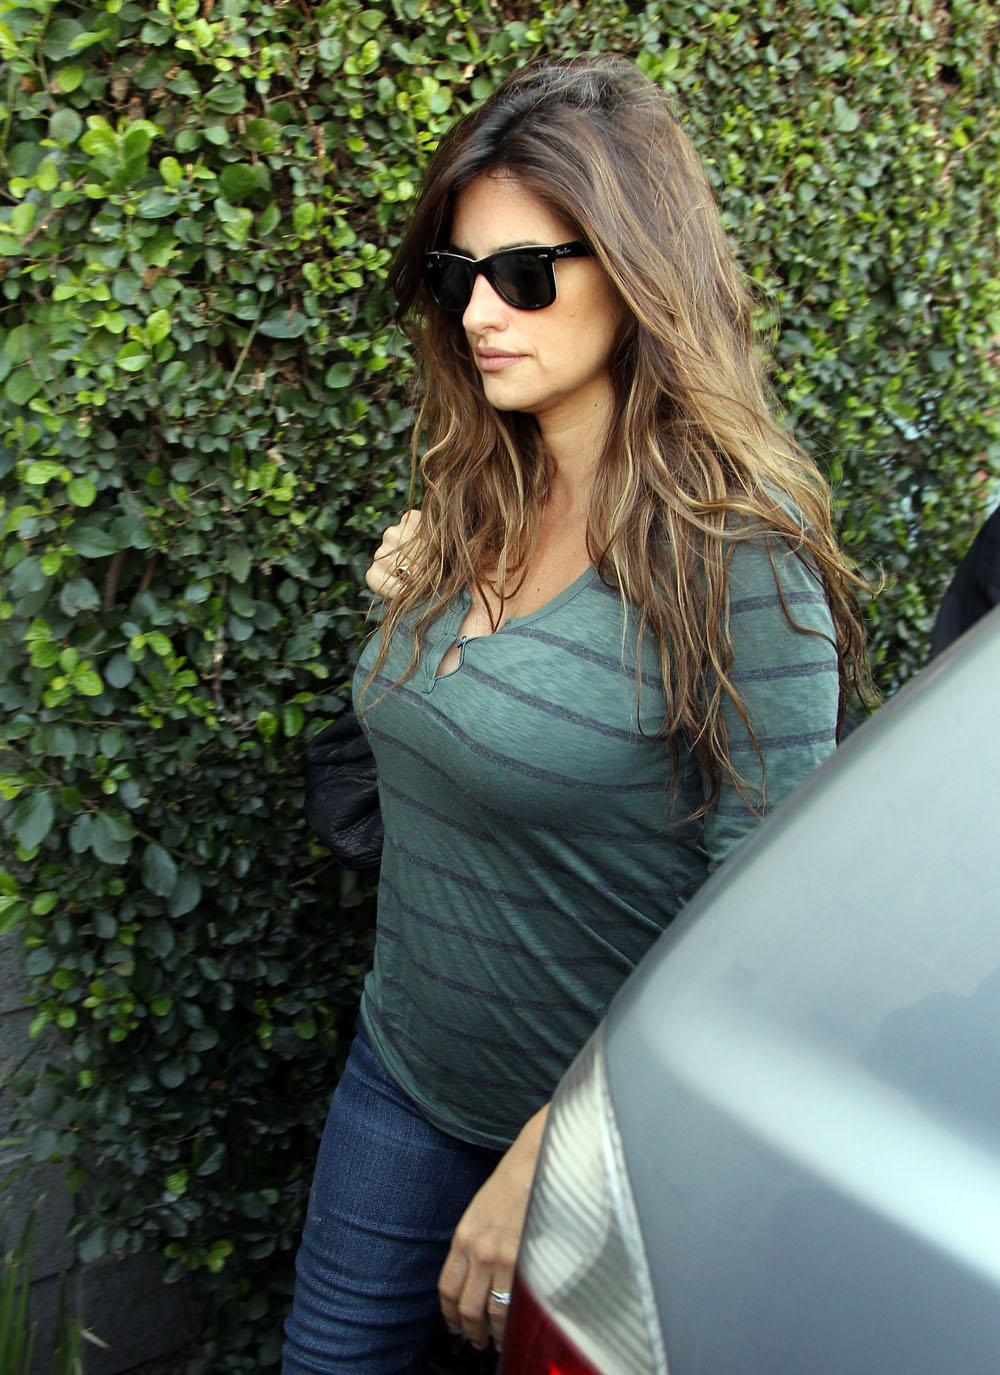 Penelope Cruz Looking Out Of This World Hot In A Tight T